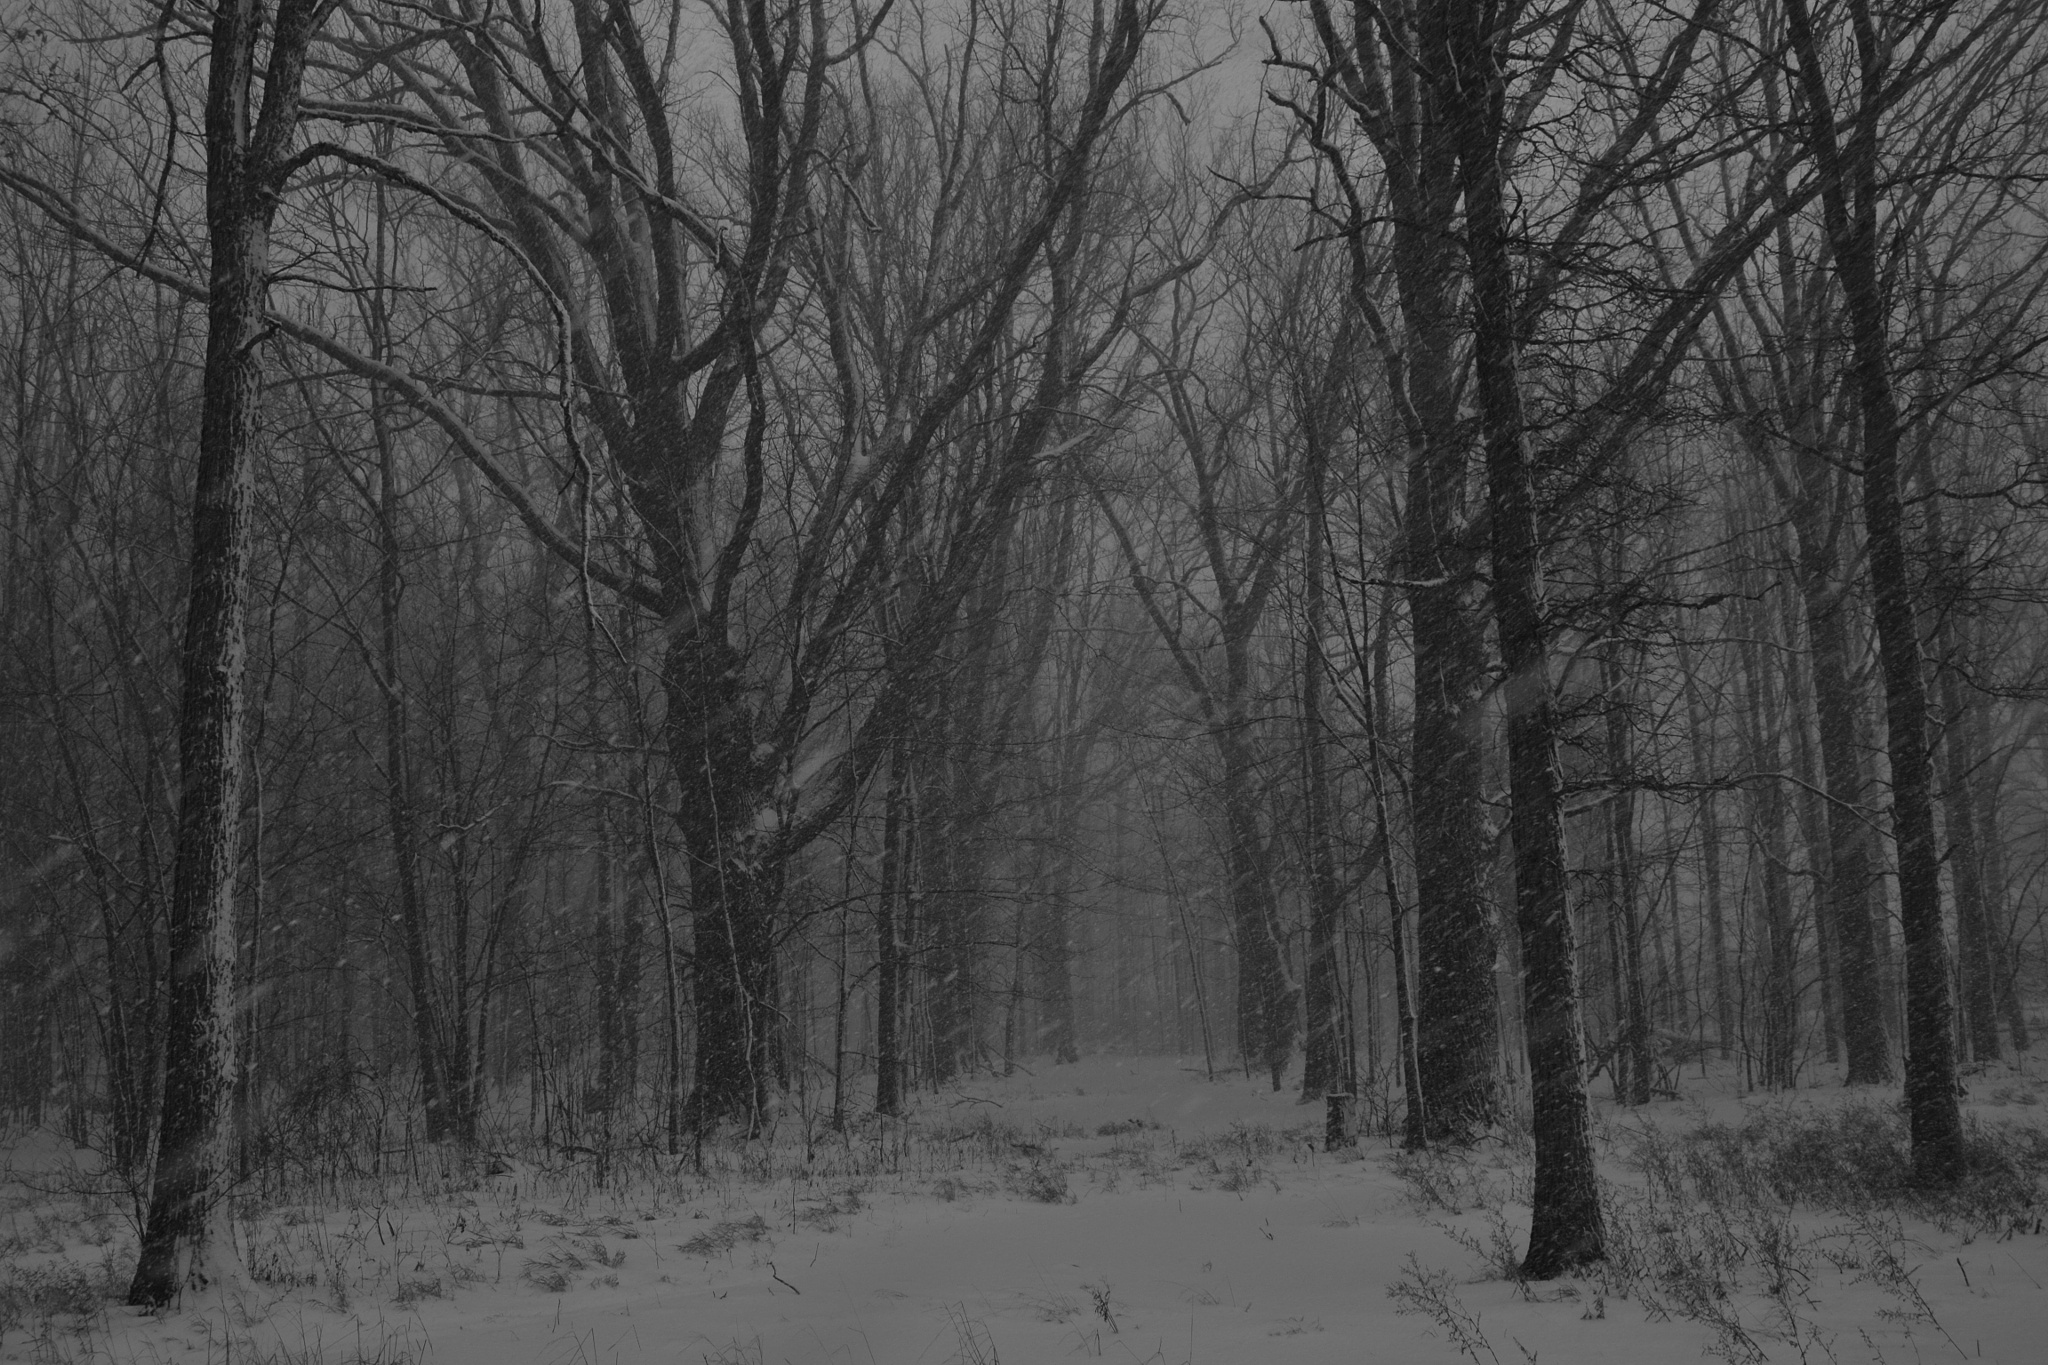 A white out by Thom FitzRandolph